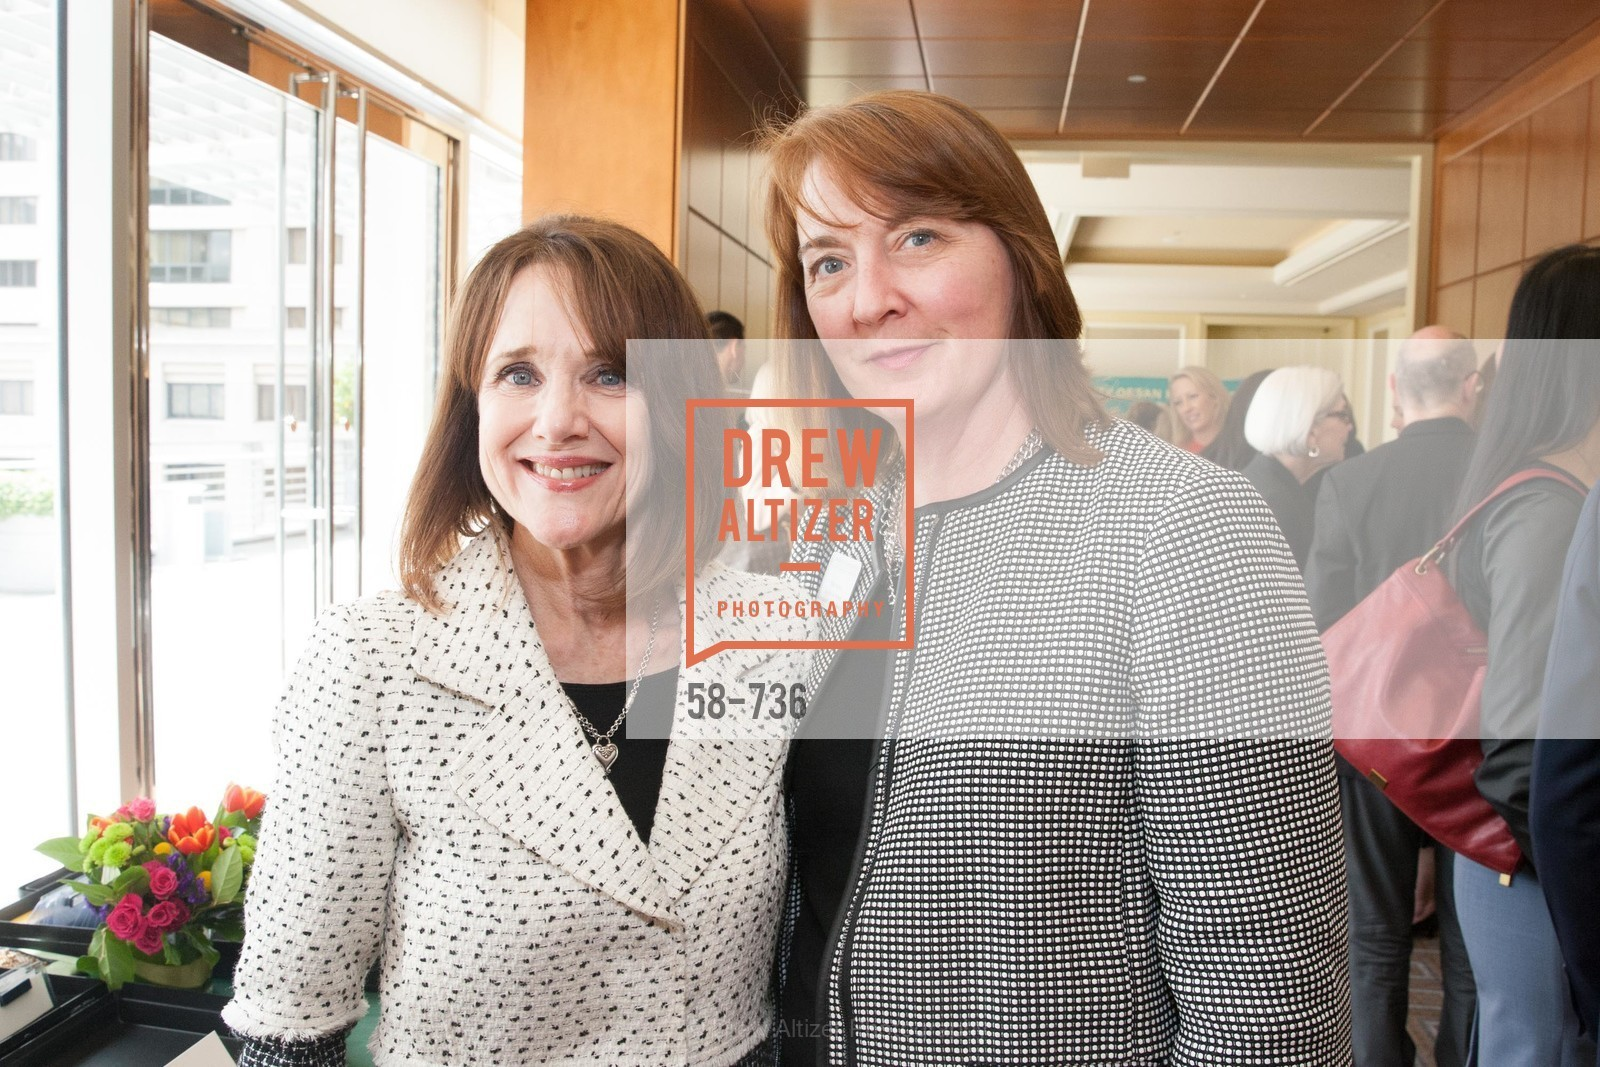 Jane Gleason, Marly Norris, USF Women in Leadership and Philanthropy Luncheon With Julia Hartz, Co-Founder & President of EventBrite, US, May 16th, 2015,Drew Altizer, Drew Altizer Photography, full-service agency, private events, San Francisco photographer, photographer california